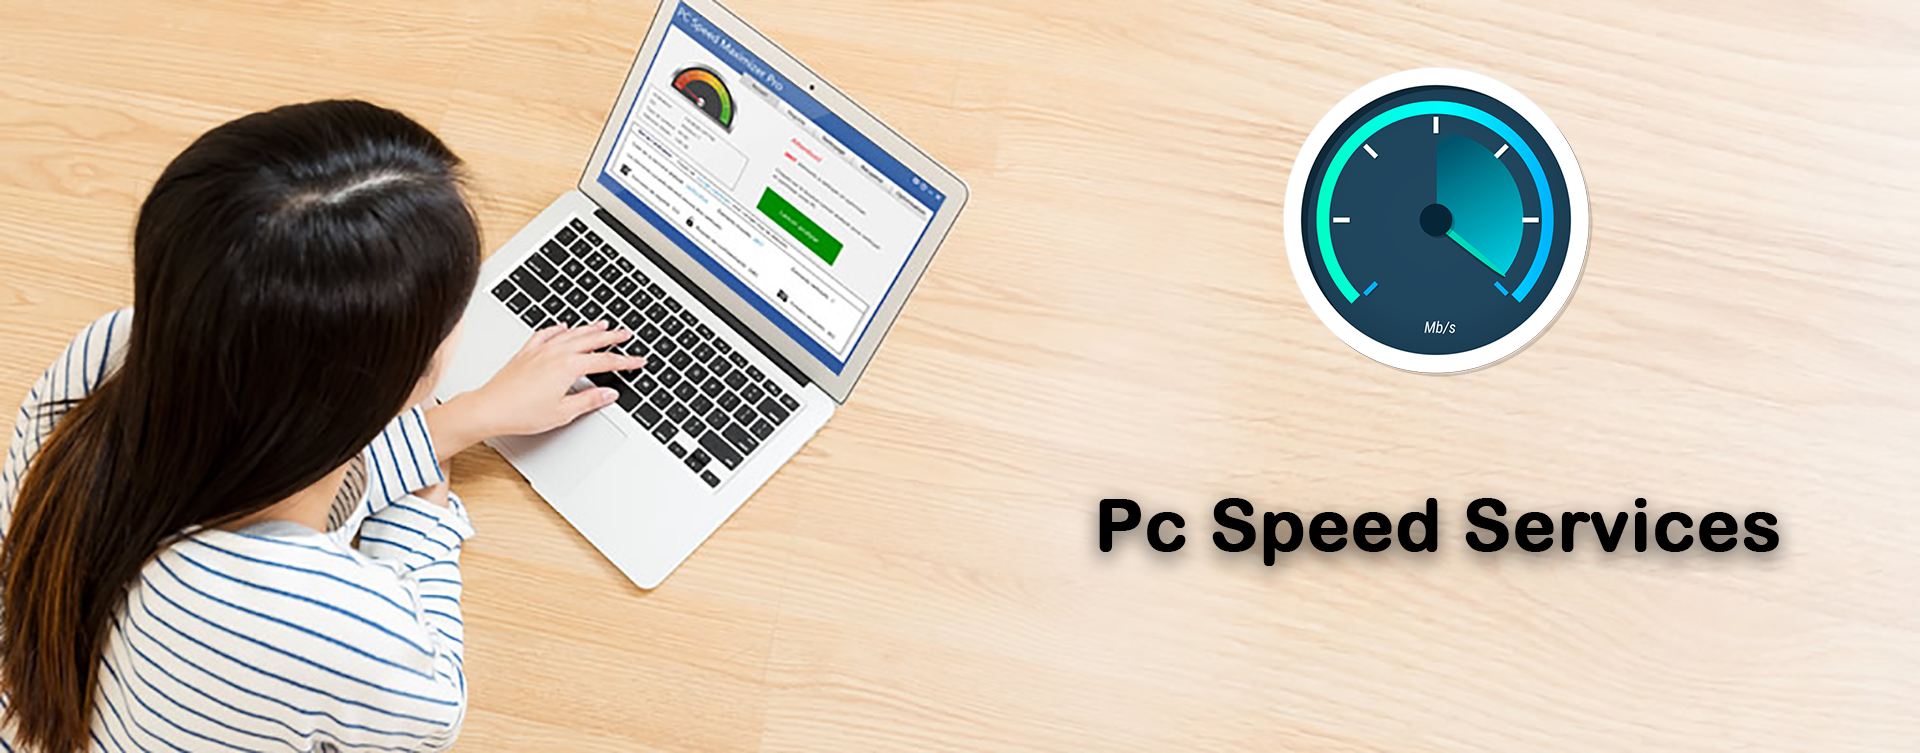 PC speed services